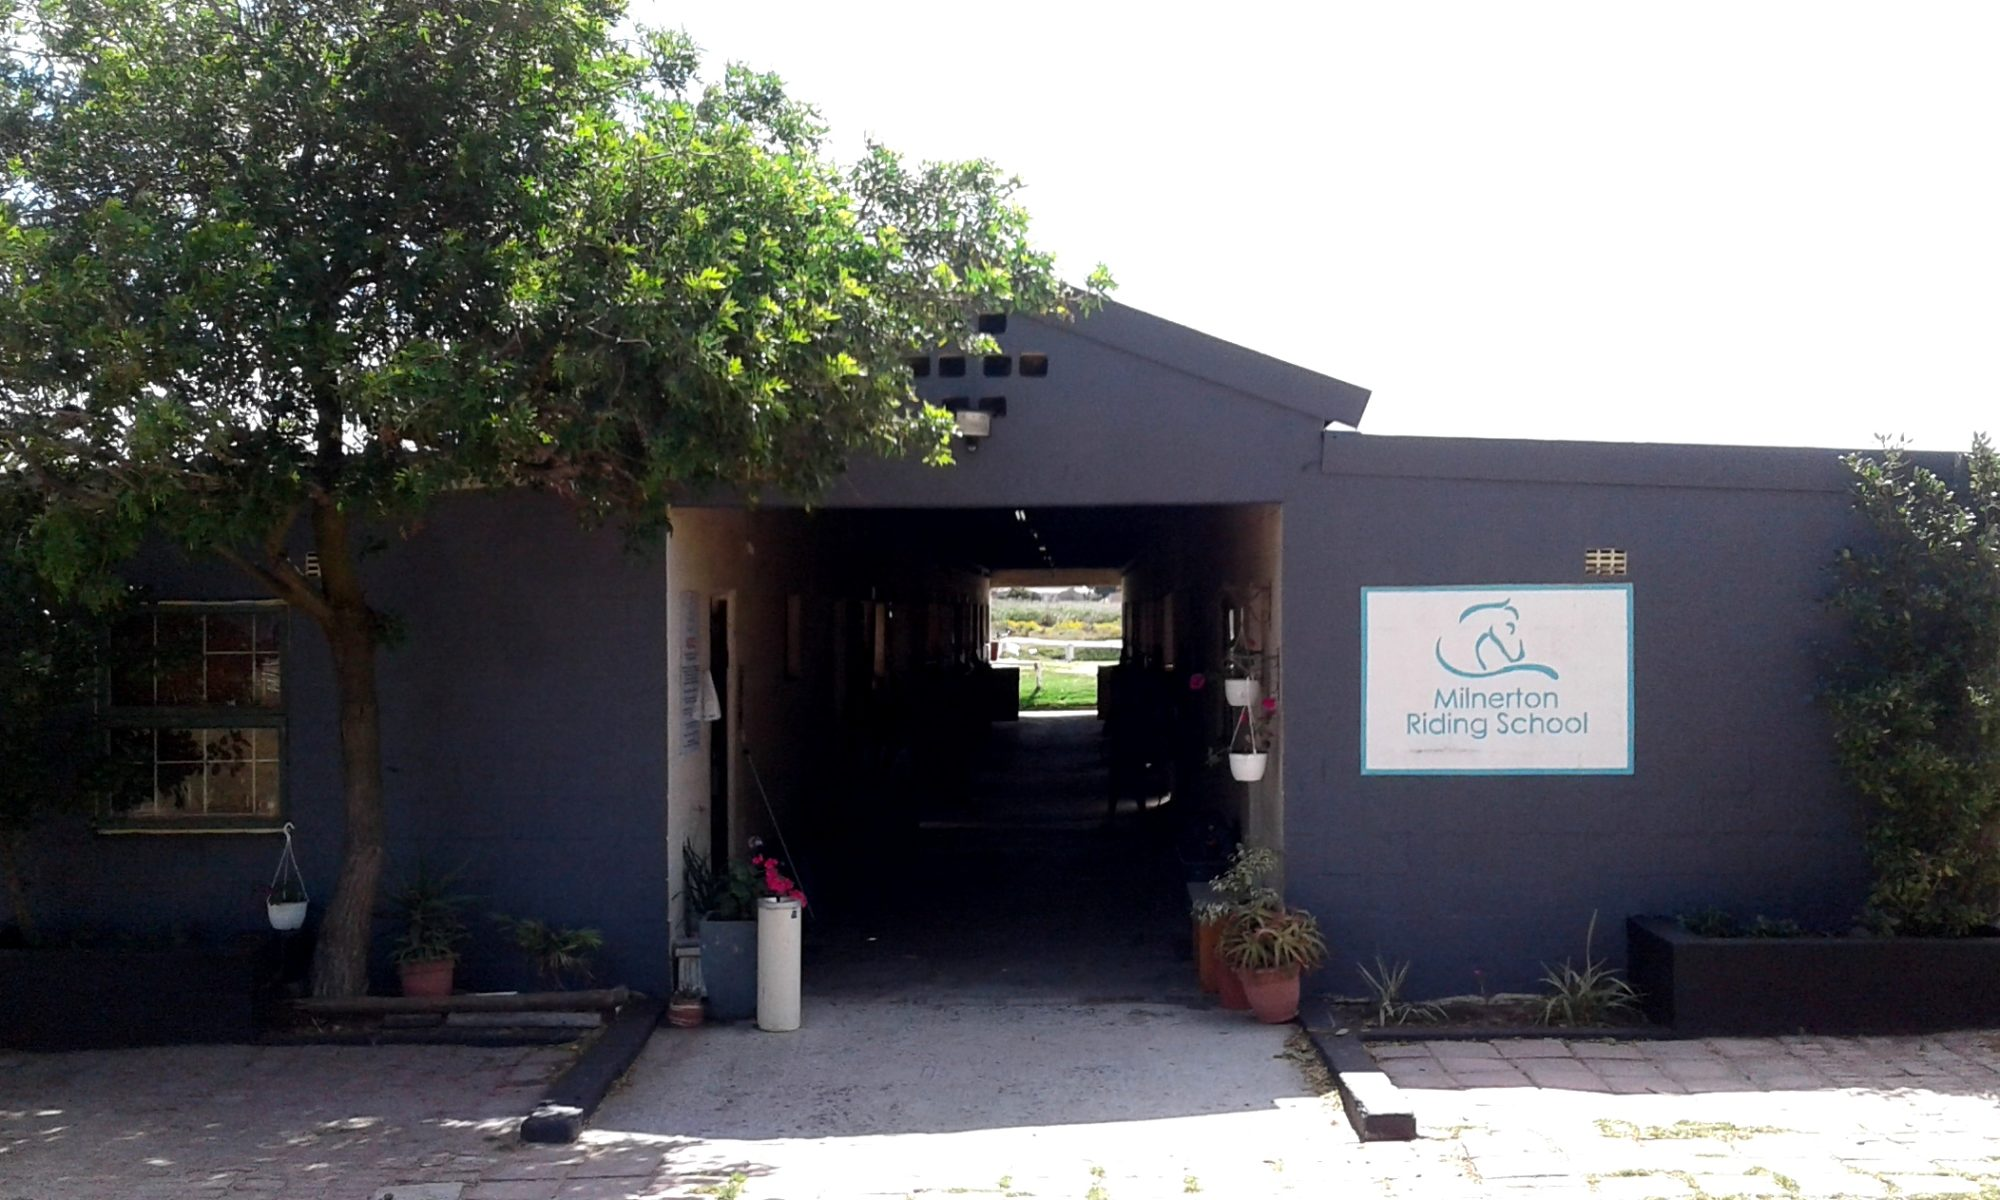 Milnerton Riding School